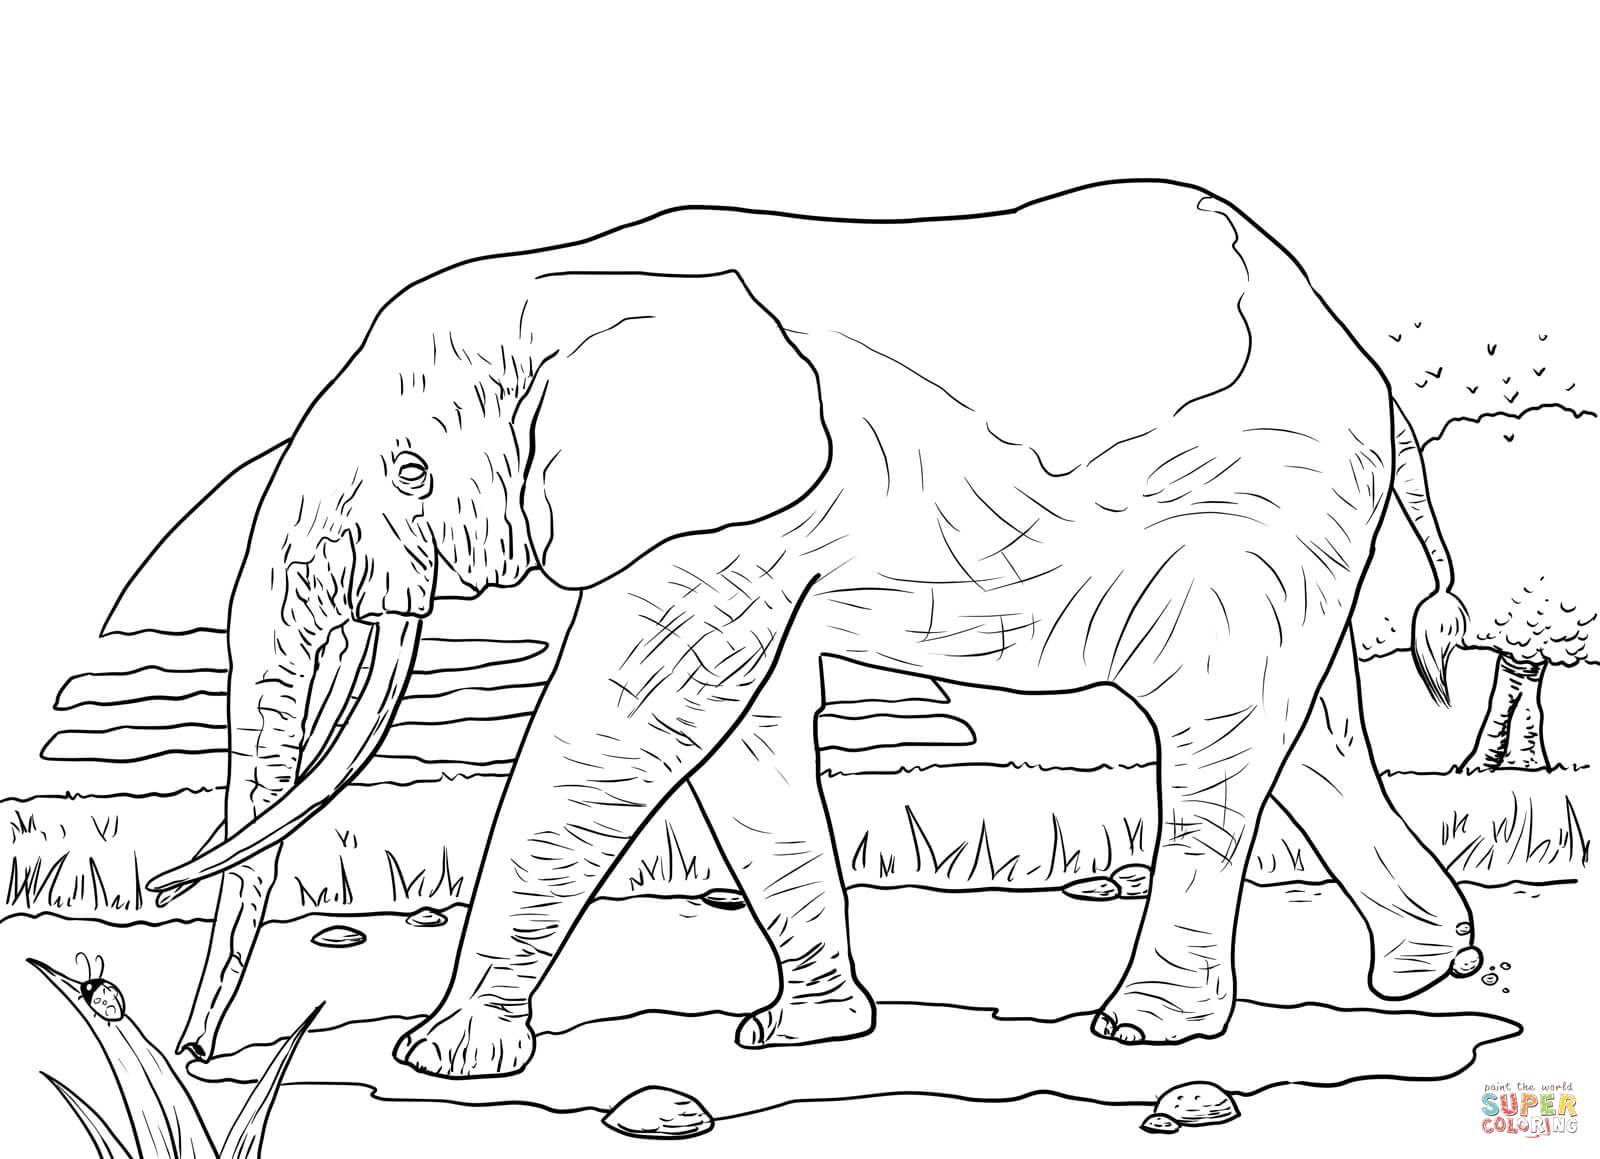 12 Pics Of African Savanna Coloring Pages Preschool Grassland - African-savanna-coloring-pages